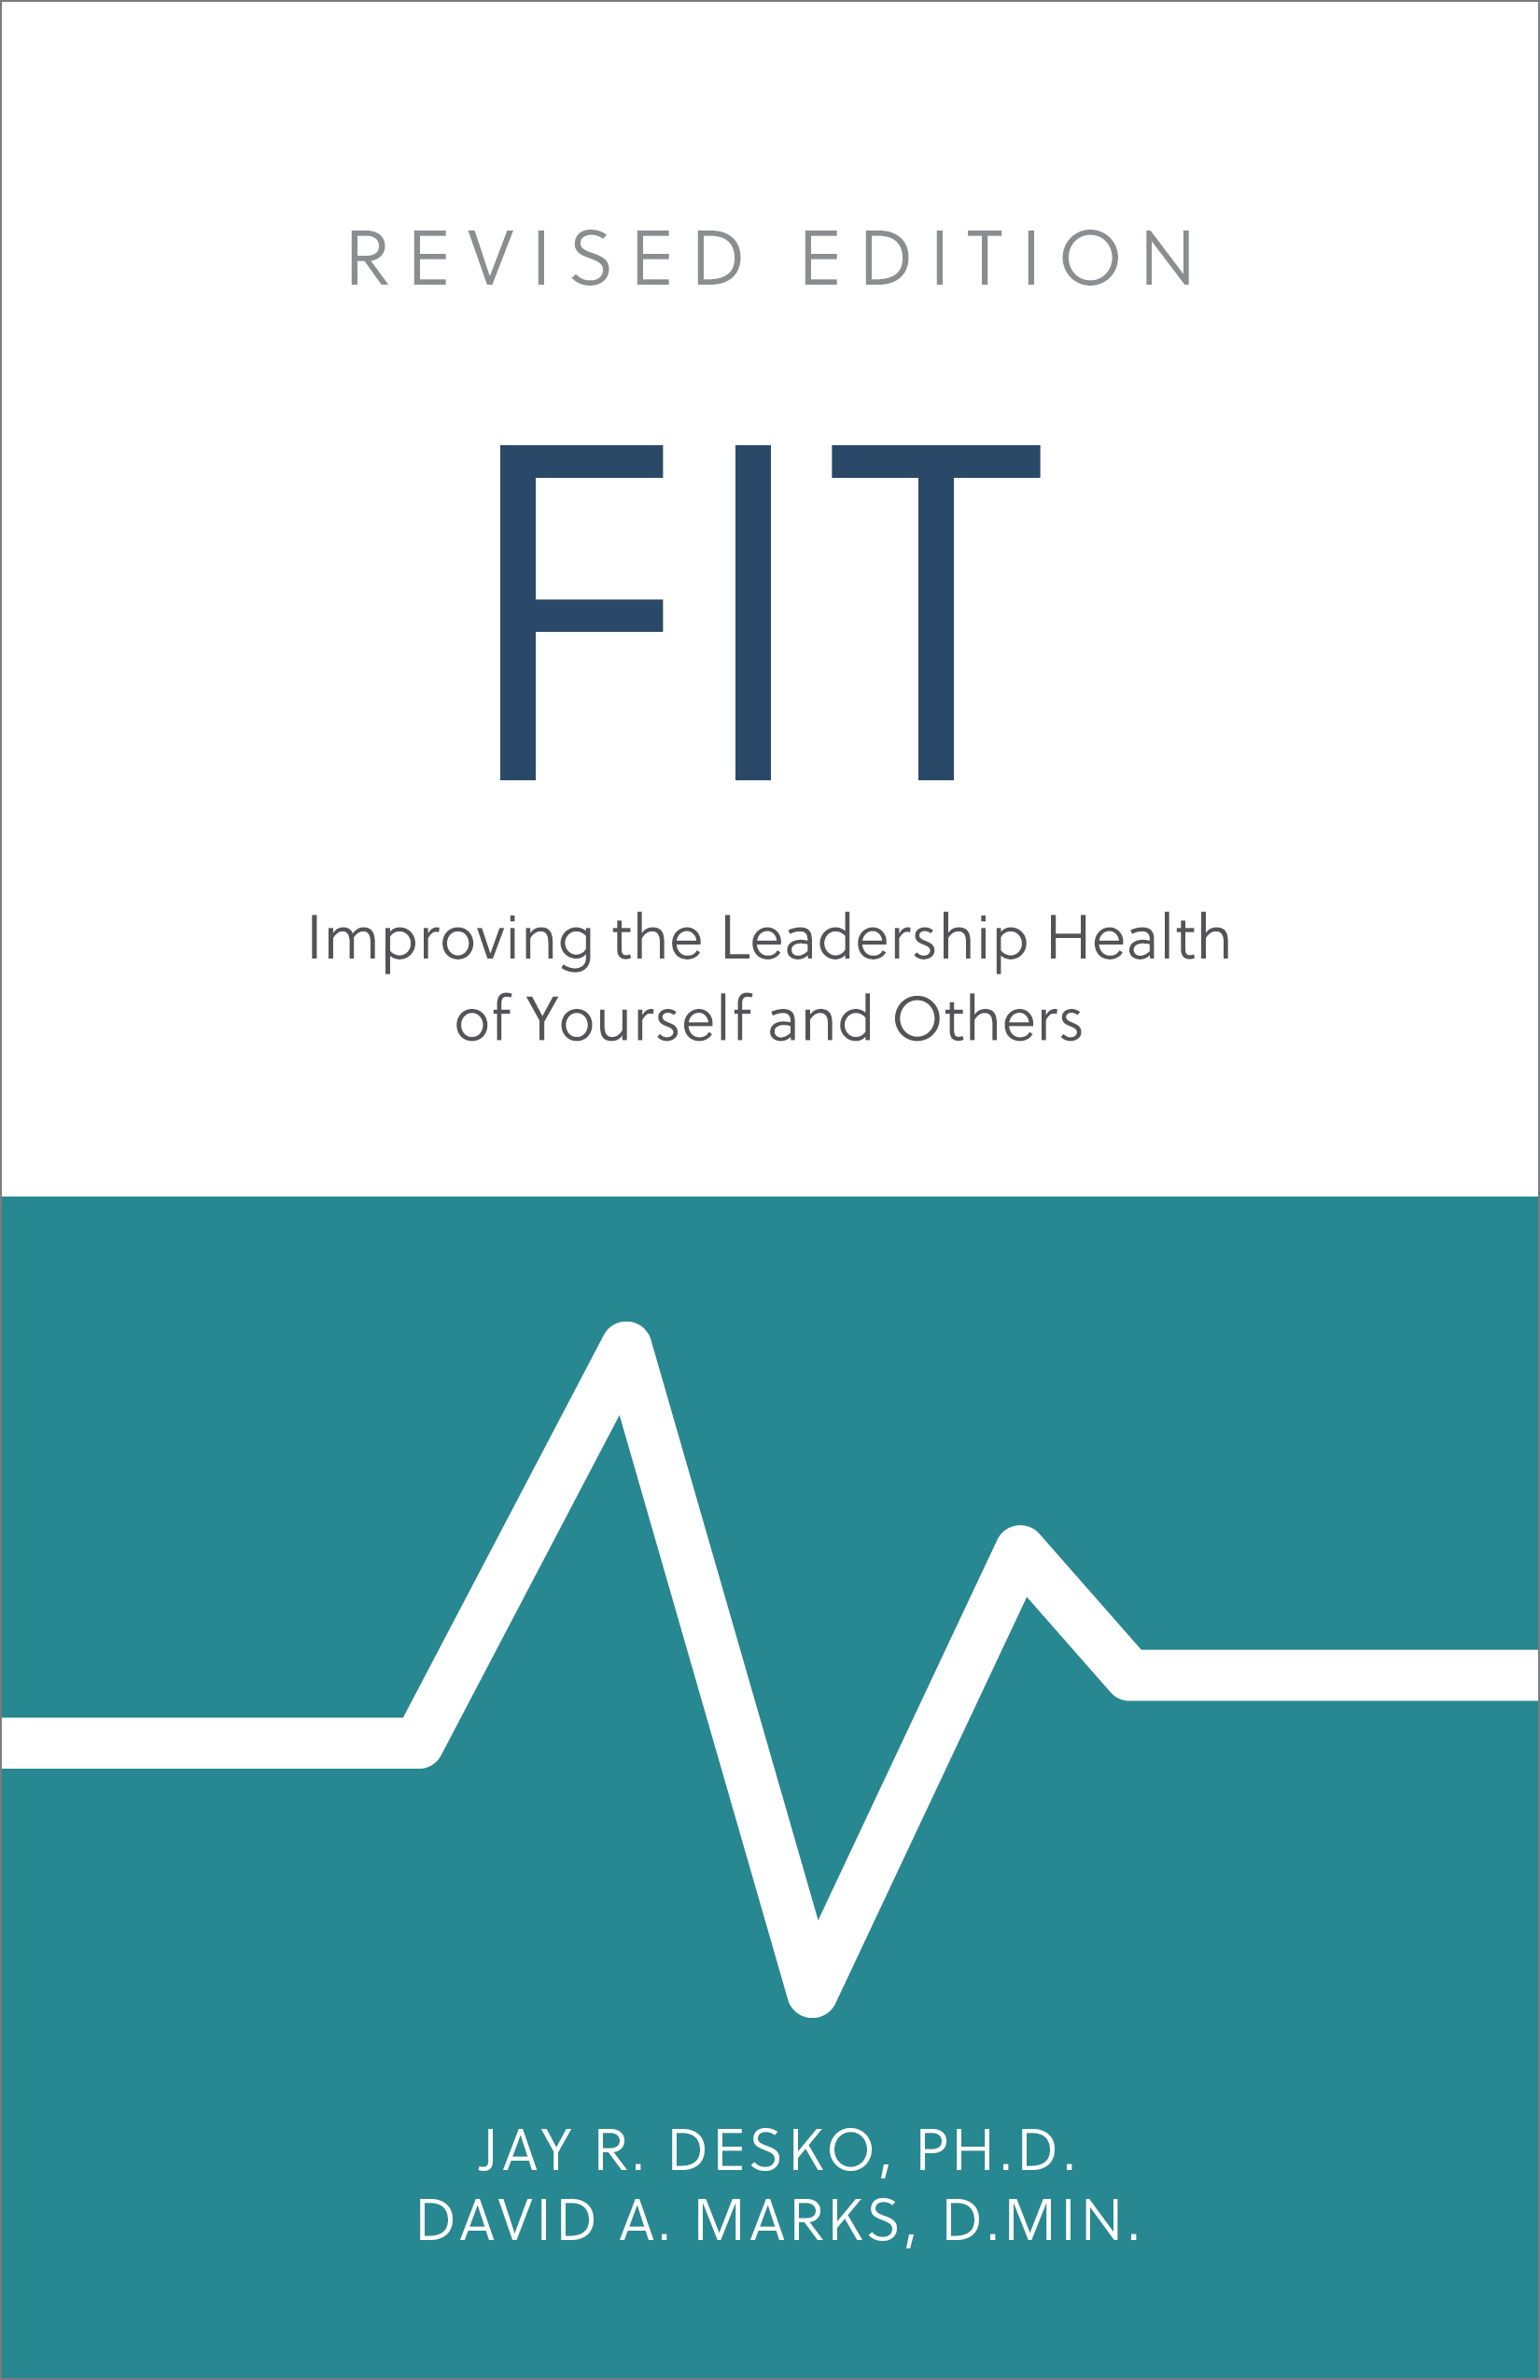 FIT – Improving the Leadership Health of Yourself and Others: Revised Edition -  By Jay R. Desko, Ph.D. & David A. Marks, D.Min. - ISBN: 978-1-7923-0859-8 - The Center Consulting - Organizational and leadership consulting and coaching for businesses, nonprofits, and churches